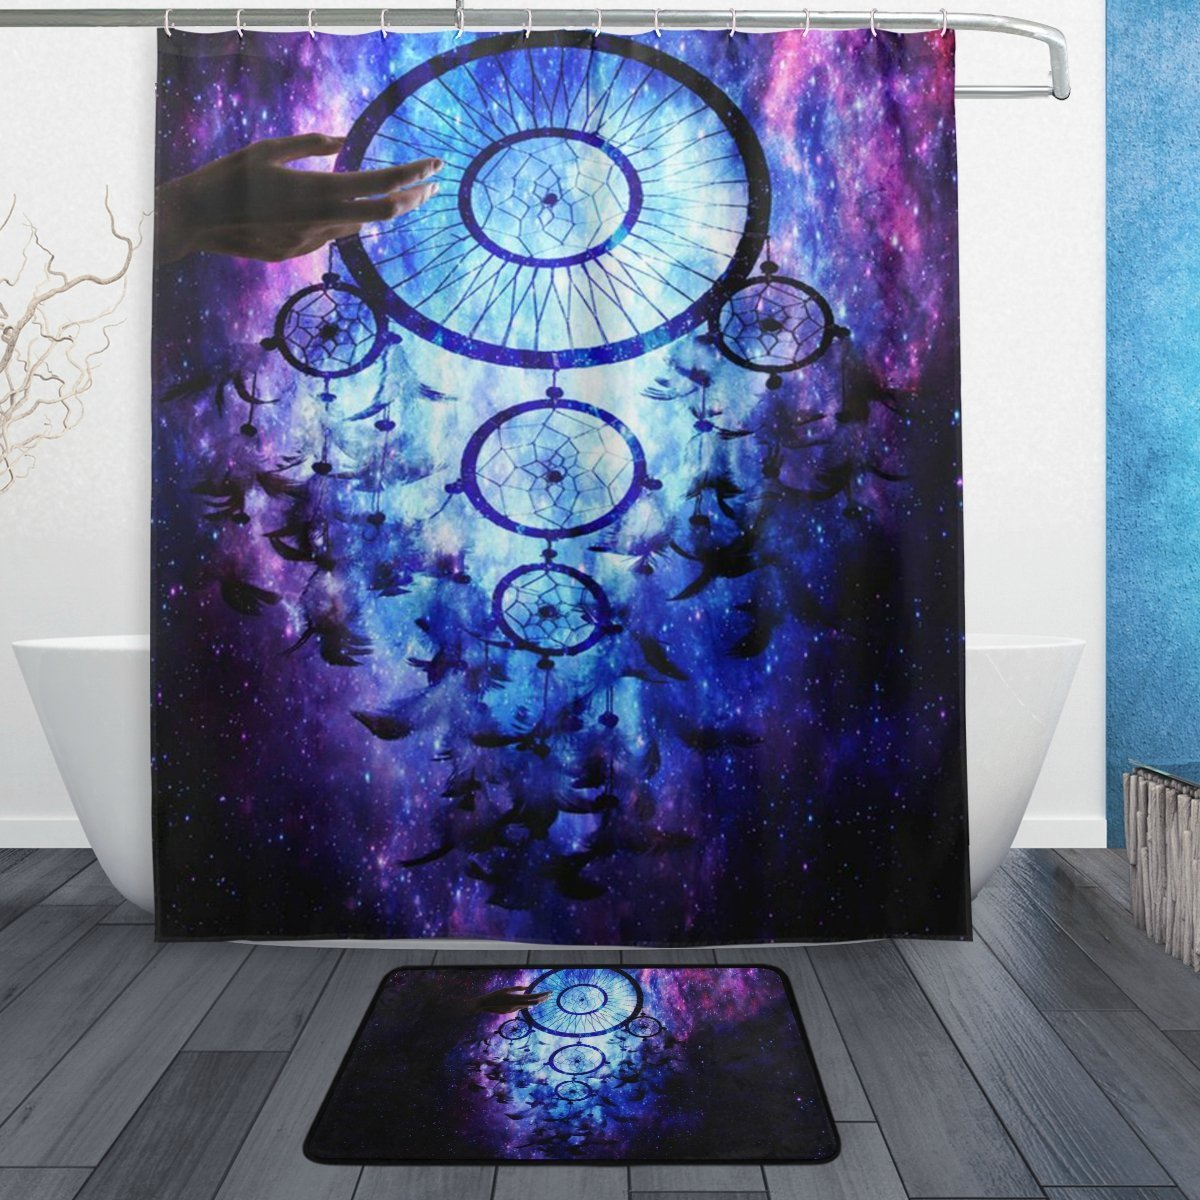 BAIHUISHOP Dream Catchers Galaxy 3-Piece Bathroom Set, Machine Washable for Everyday Use,Includes 60x72 Inch Waterproof Shower Curtain, 12 Shower Hooks and 1 Non-slip Bathroom Rug Carpet - Set of 3